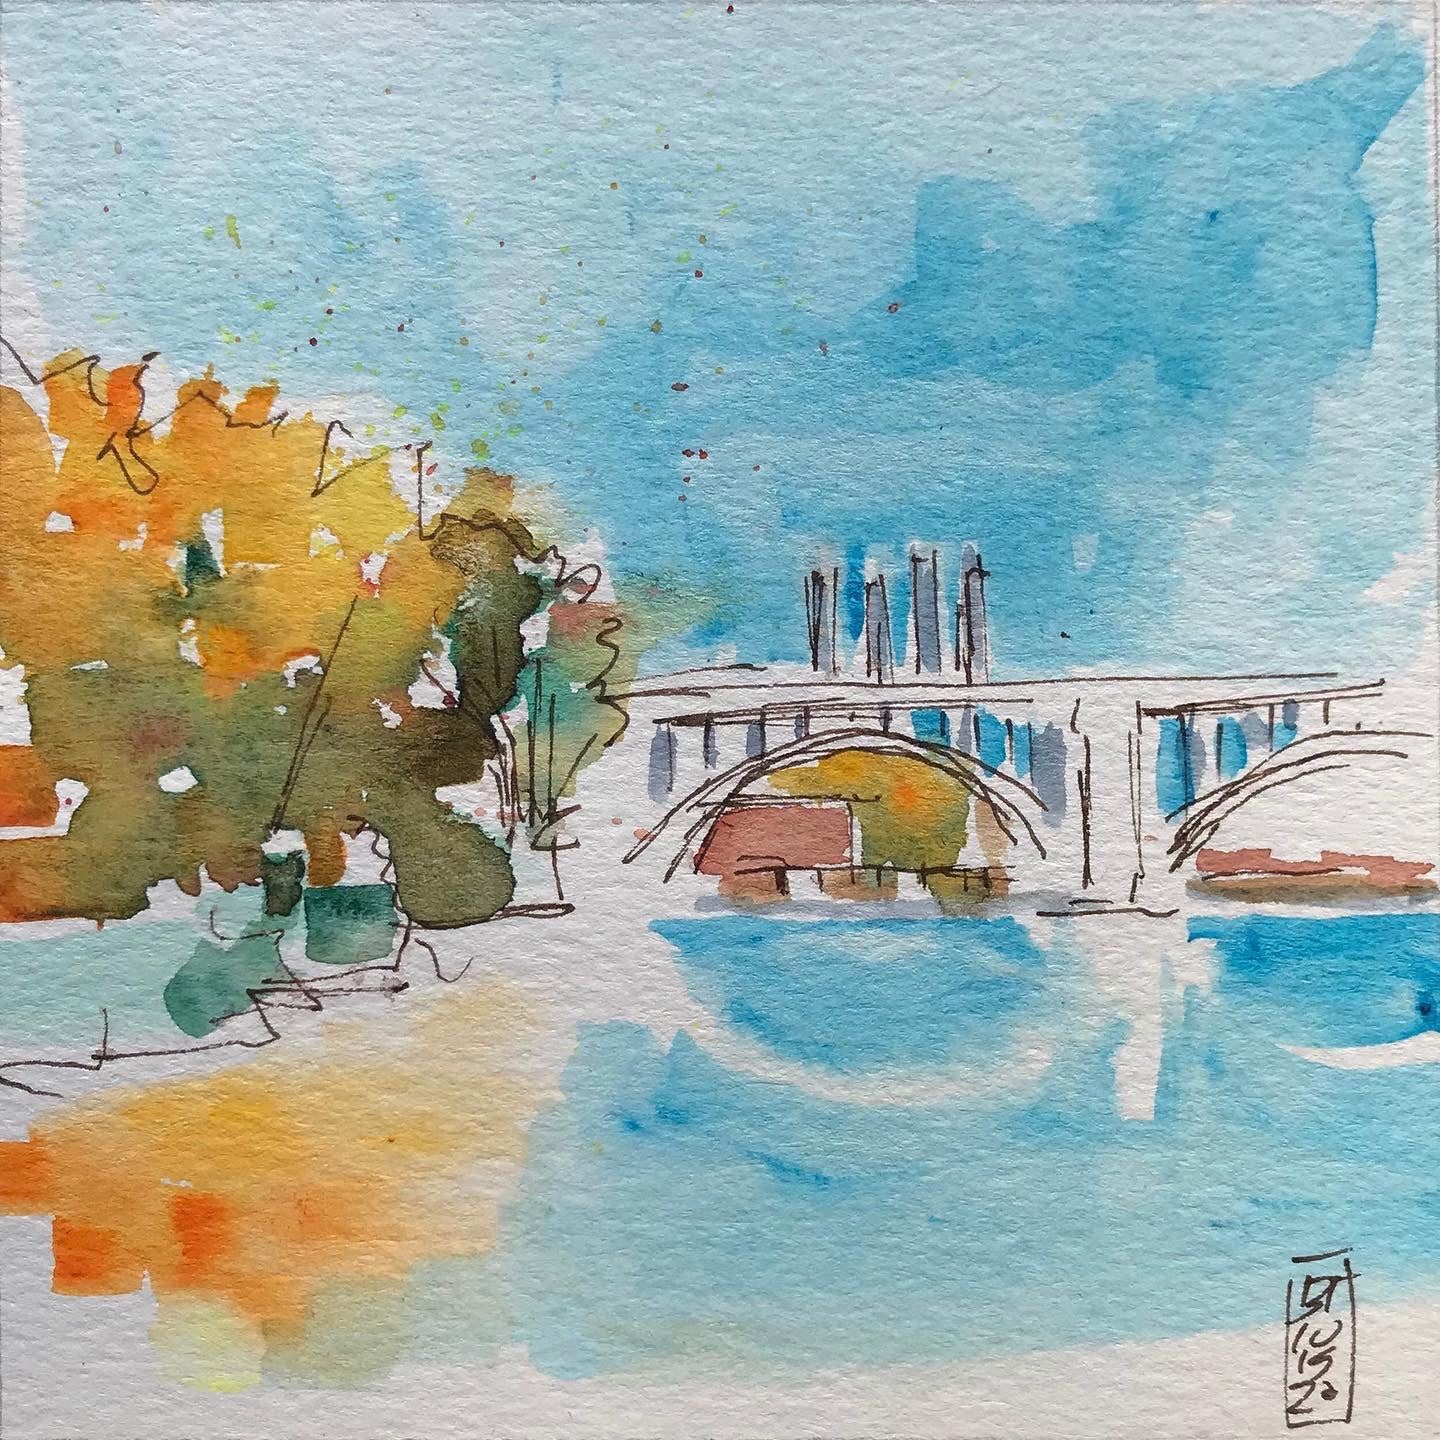 Third Avenue Bridge 10.15.20